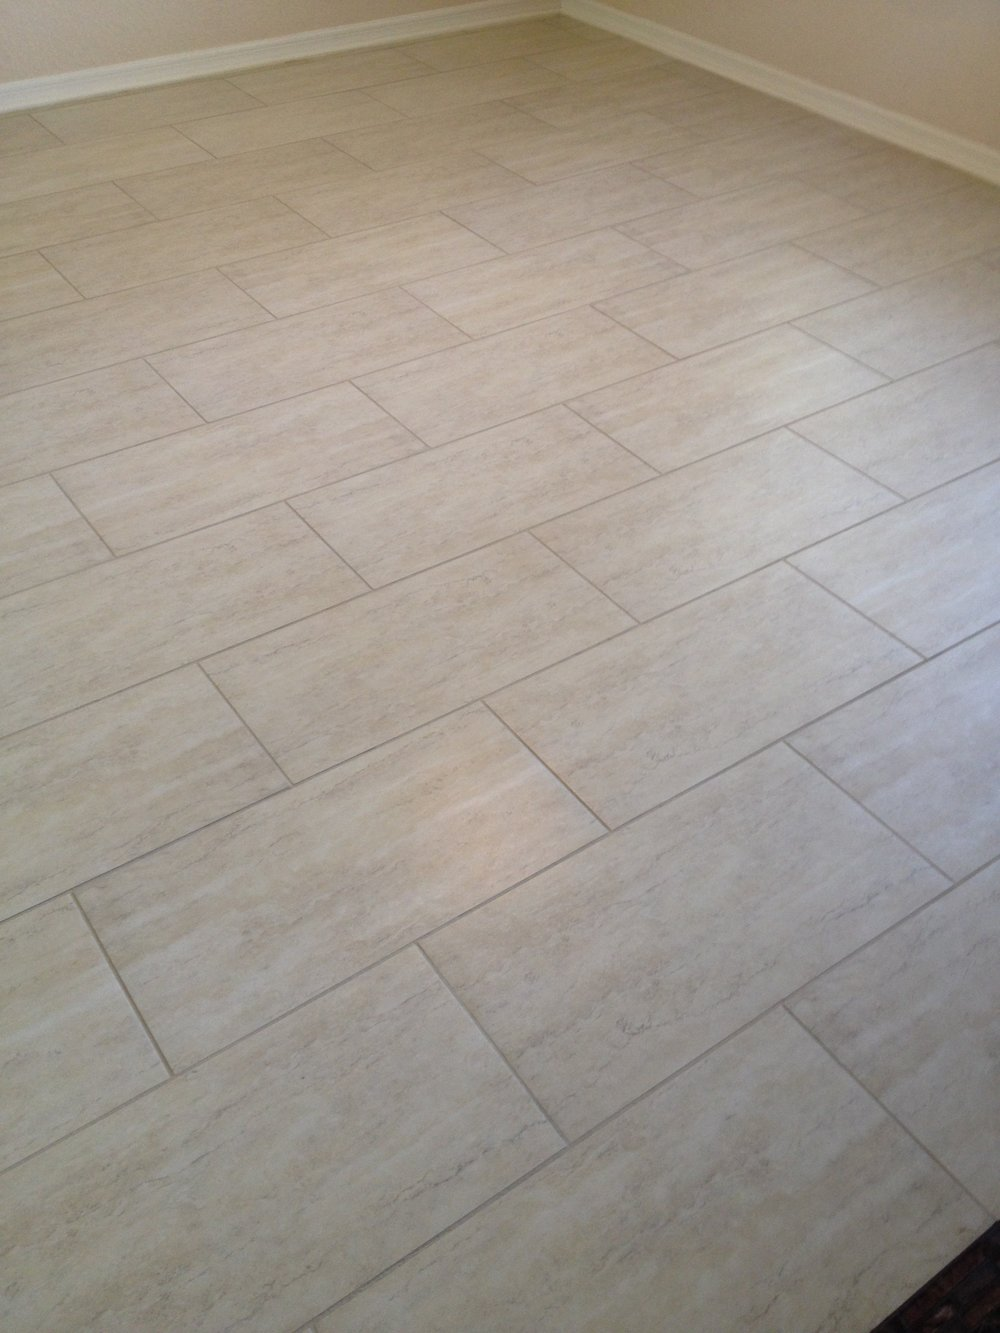 Dining Room Tile Before Mrs. Grout